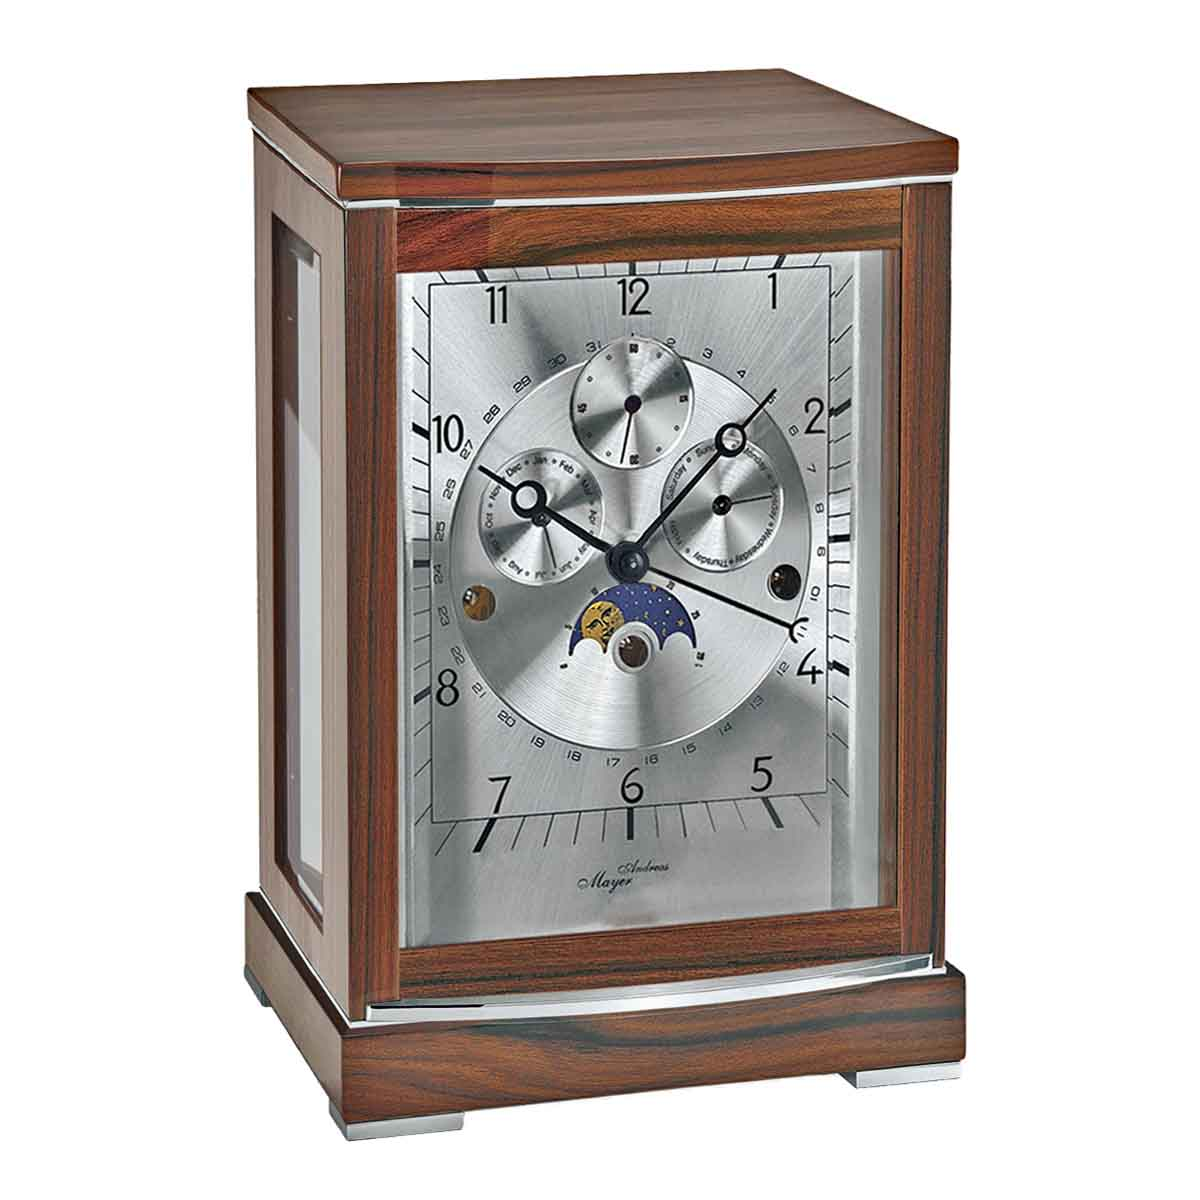 LLOYD Mantel Table Clock